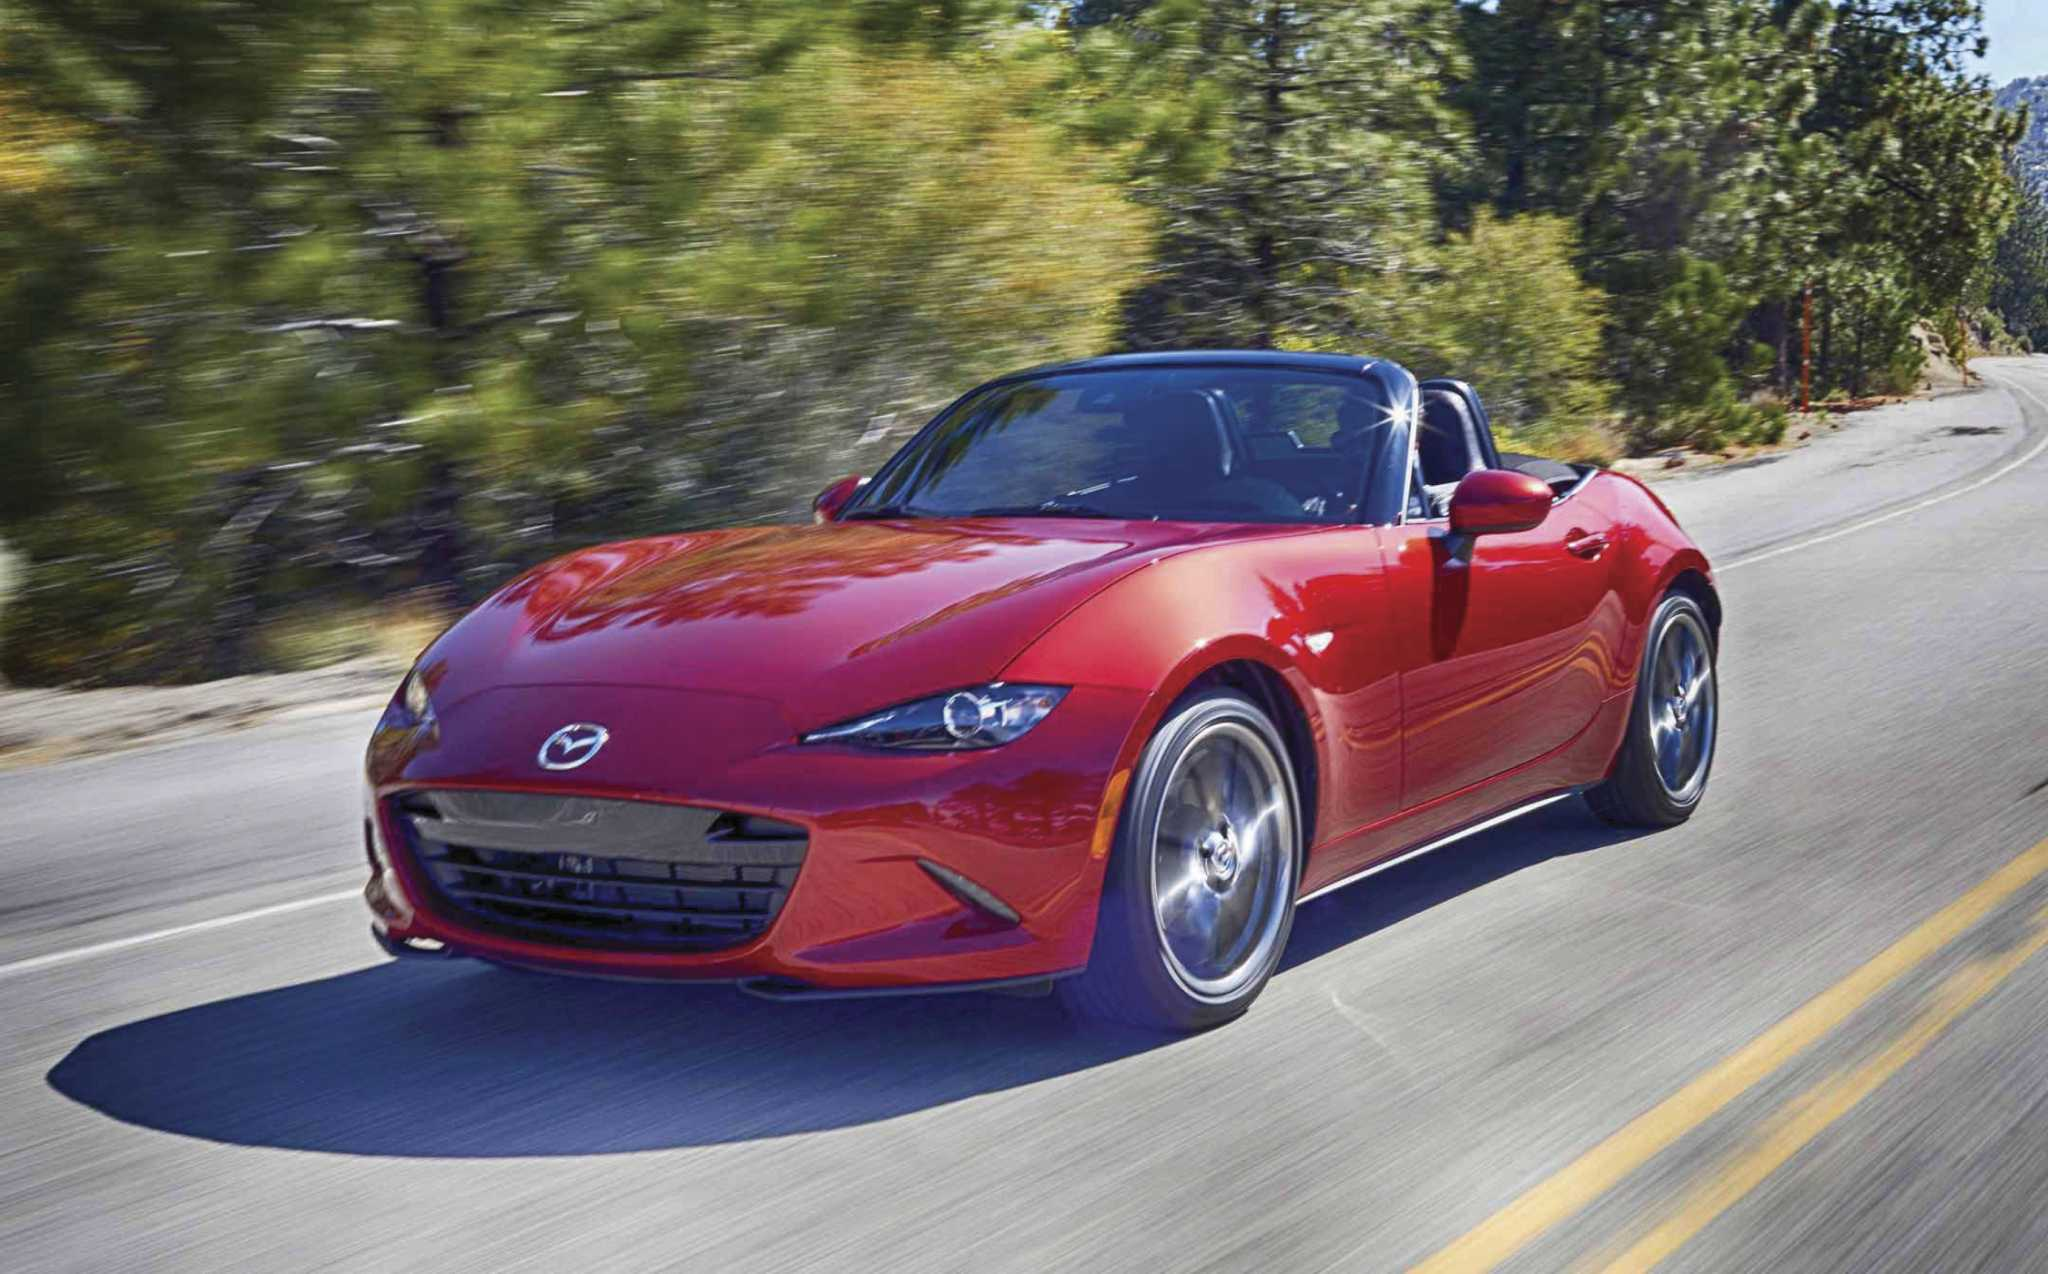 2019 Mazda MX-5 gets 26-hp boost